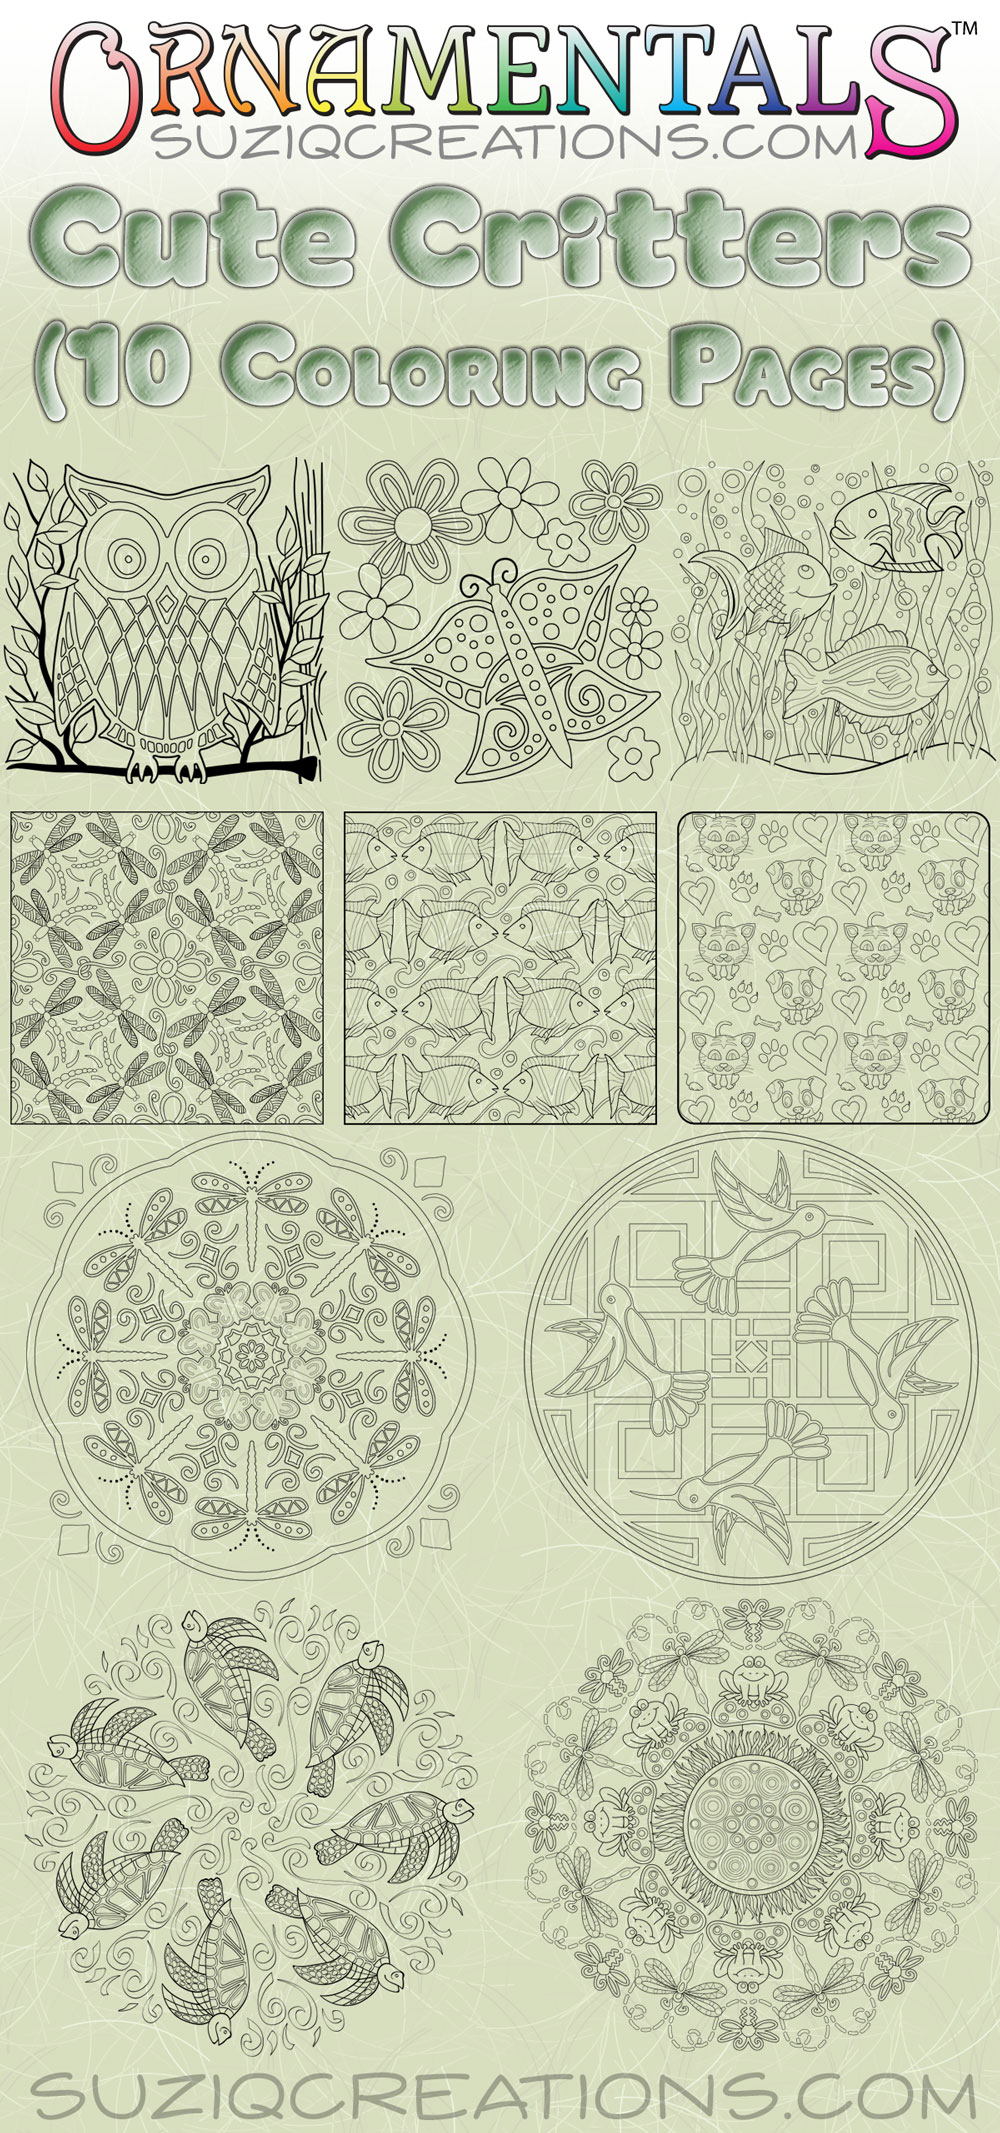 Cute Critters Coloring Page Bundle - 10 Pages